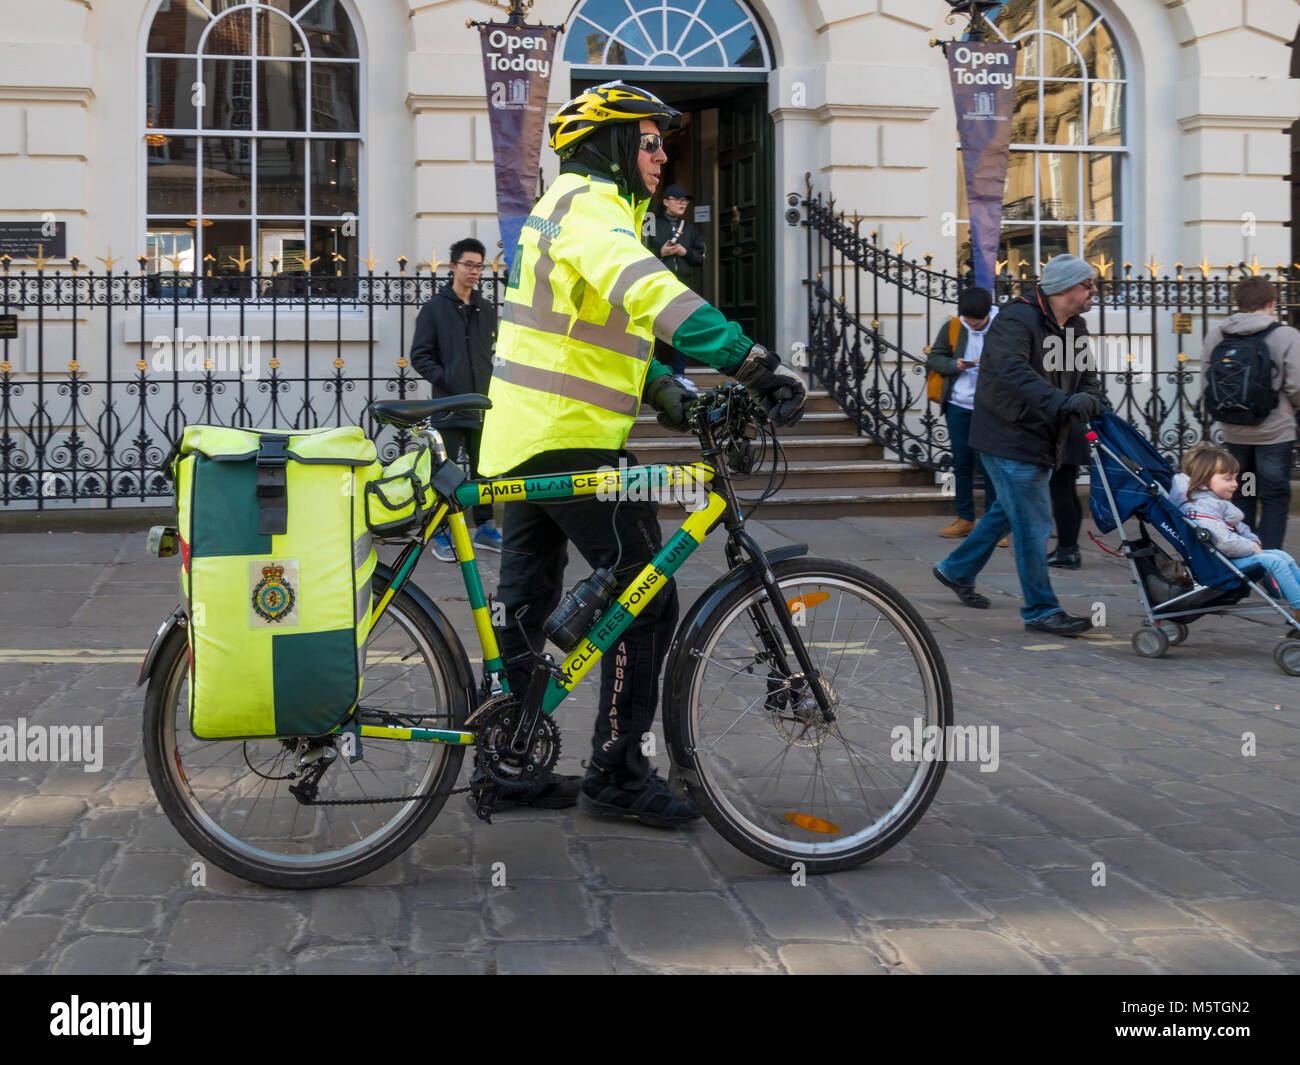 NHS National Health Service Emergency Response Paramedic providing support services by bicycle for in city centre - Stock Image